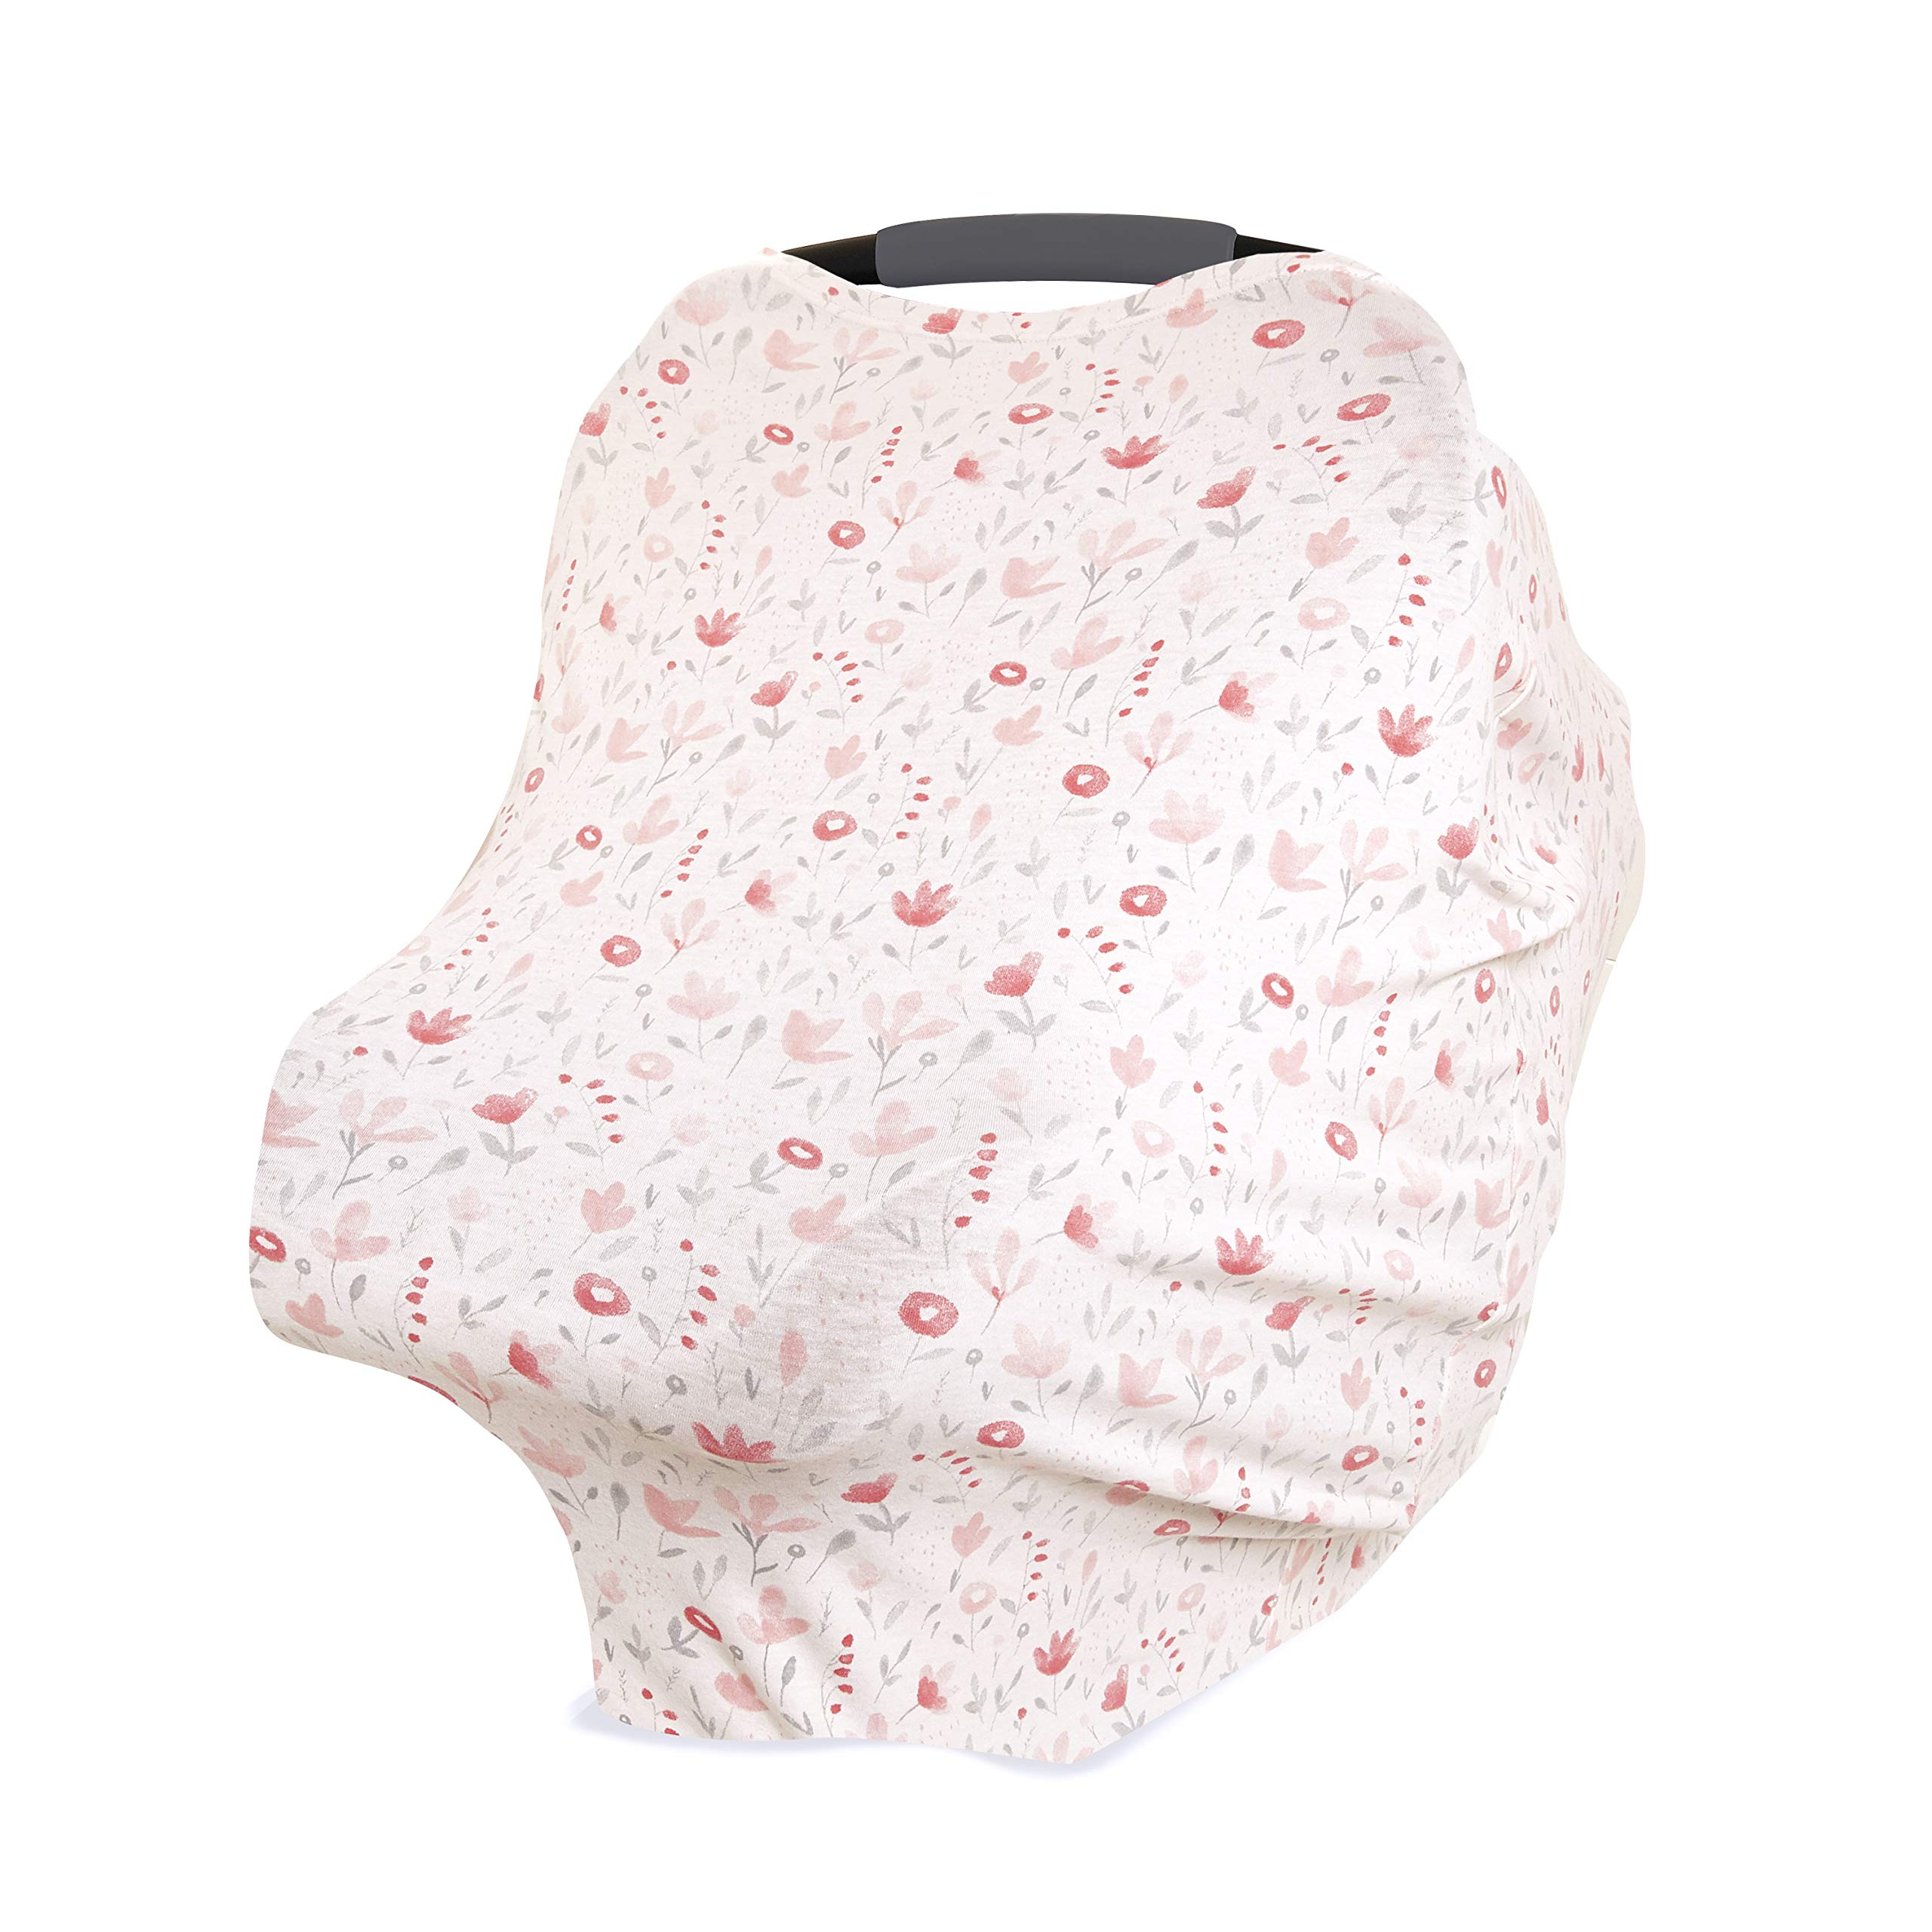 aden + anais Comfort Knit 6-in-1 Super Soft Cotton with Spandex Multi-Use Cover for Car Seat, Nursing, Cart, Baby Swing, High Chair, Infinity Scarf, Perennial